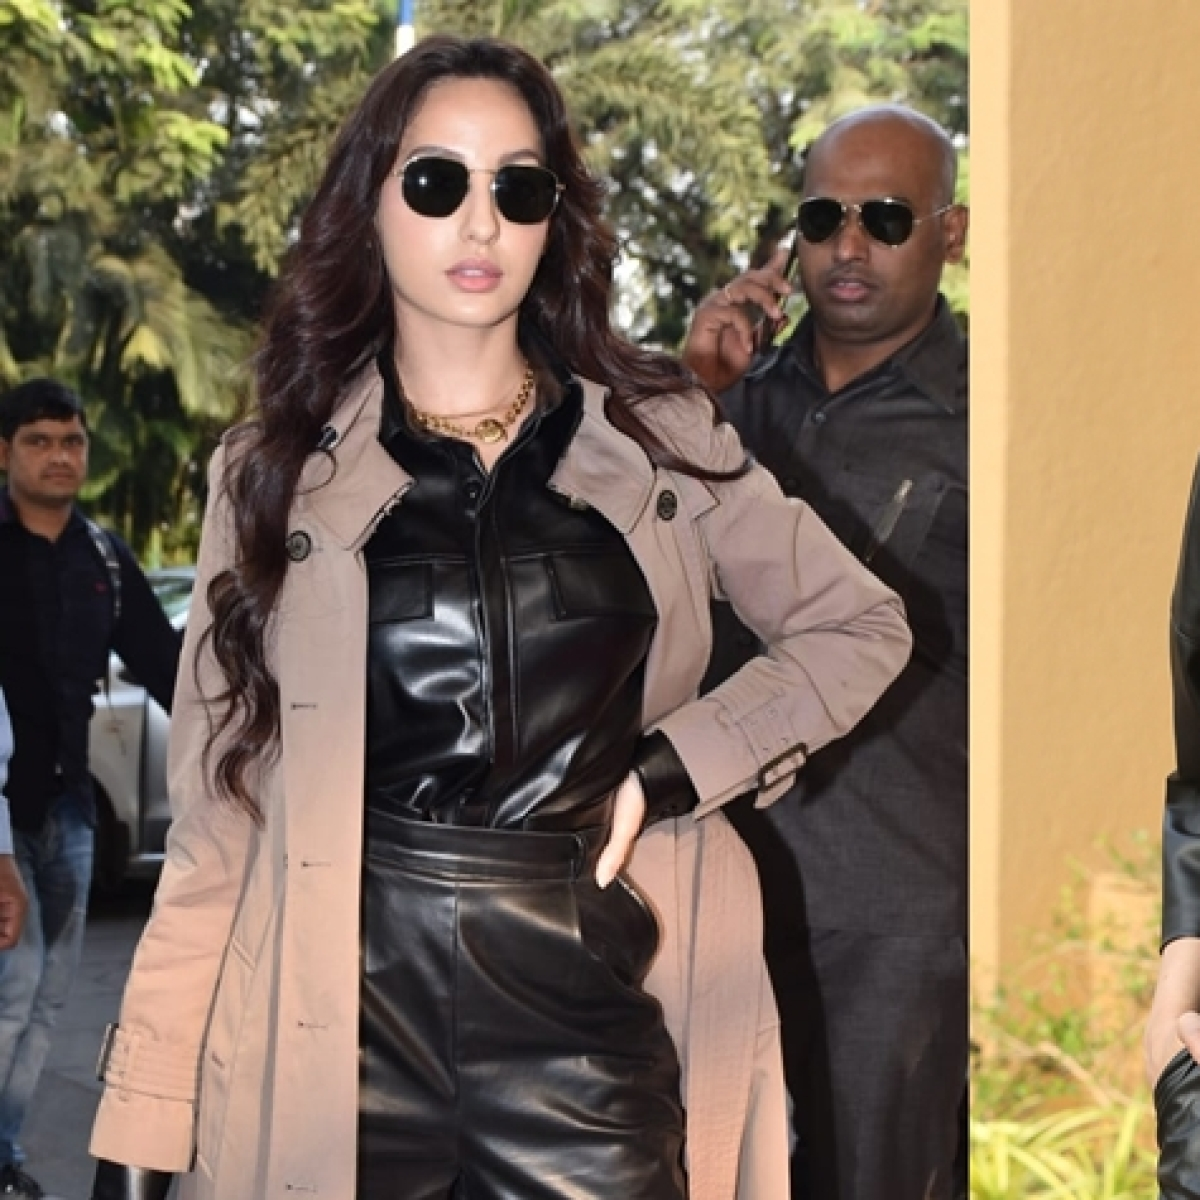 Nora Fatehi copies Deepika Padukone's all-leather outfit but hides it beneath Rs 1.4 lakh trench coat